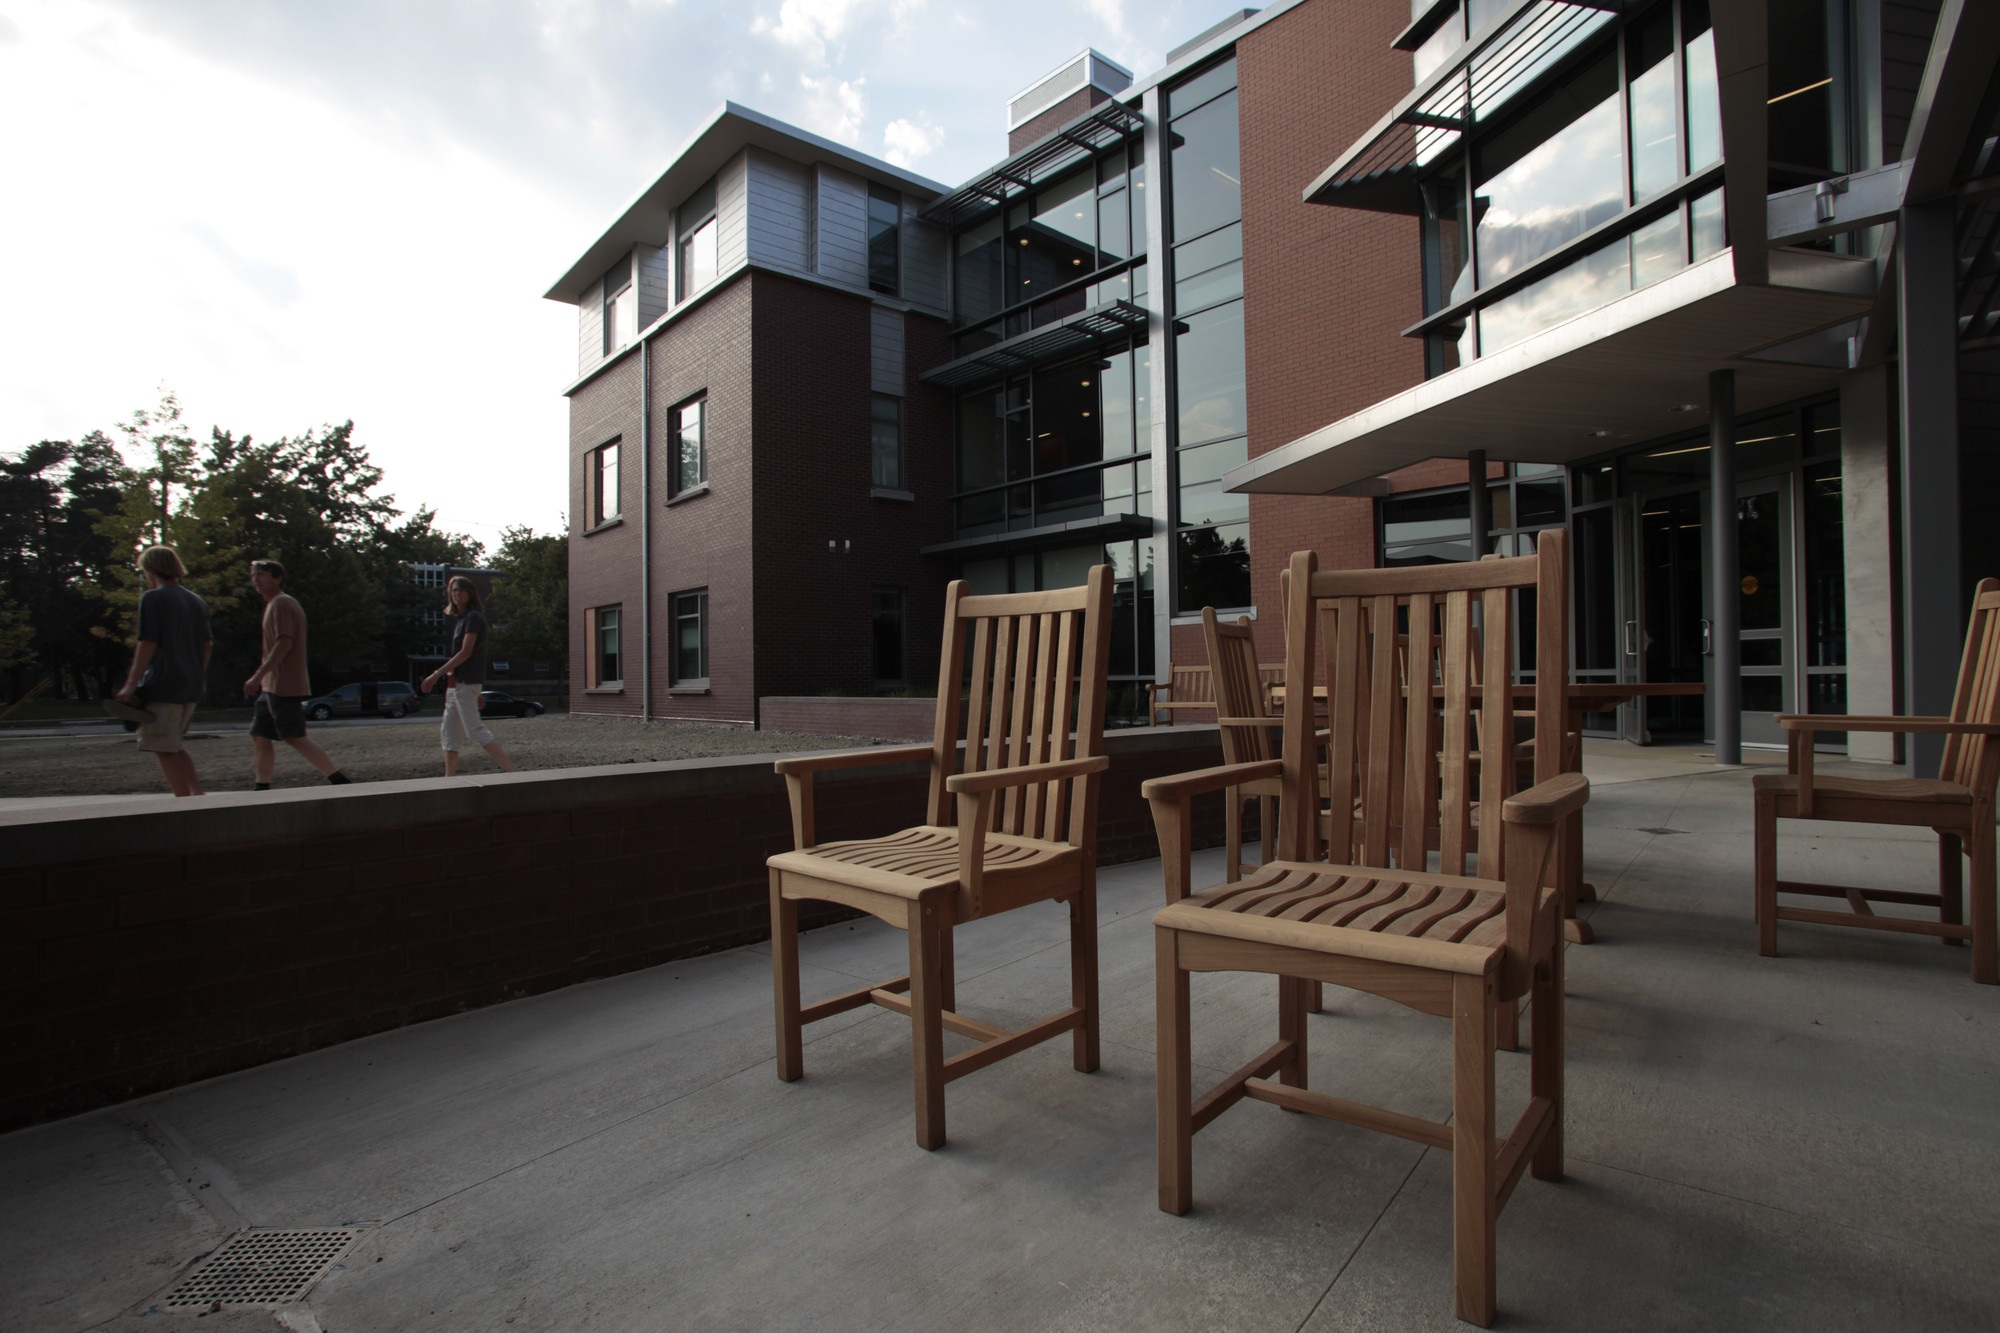 Wood chairs on a concrete patio outside a brick and glass building.